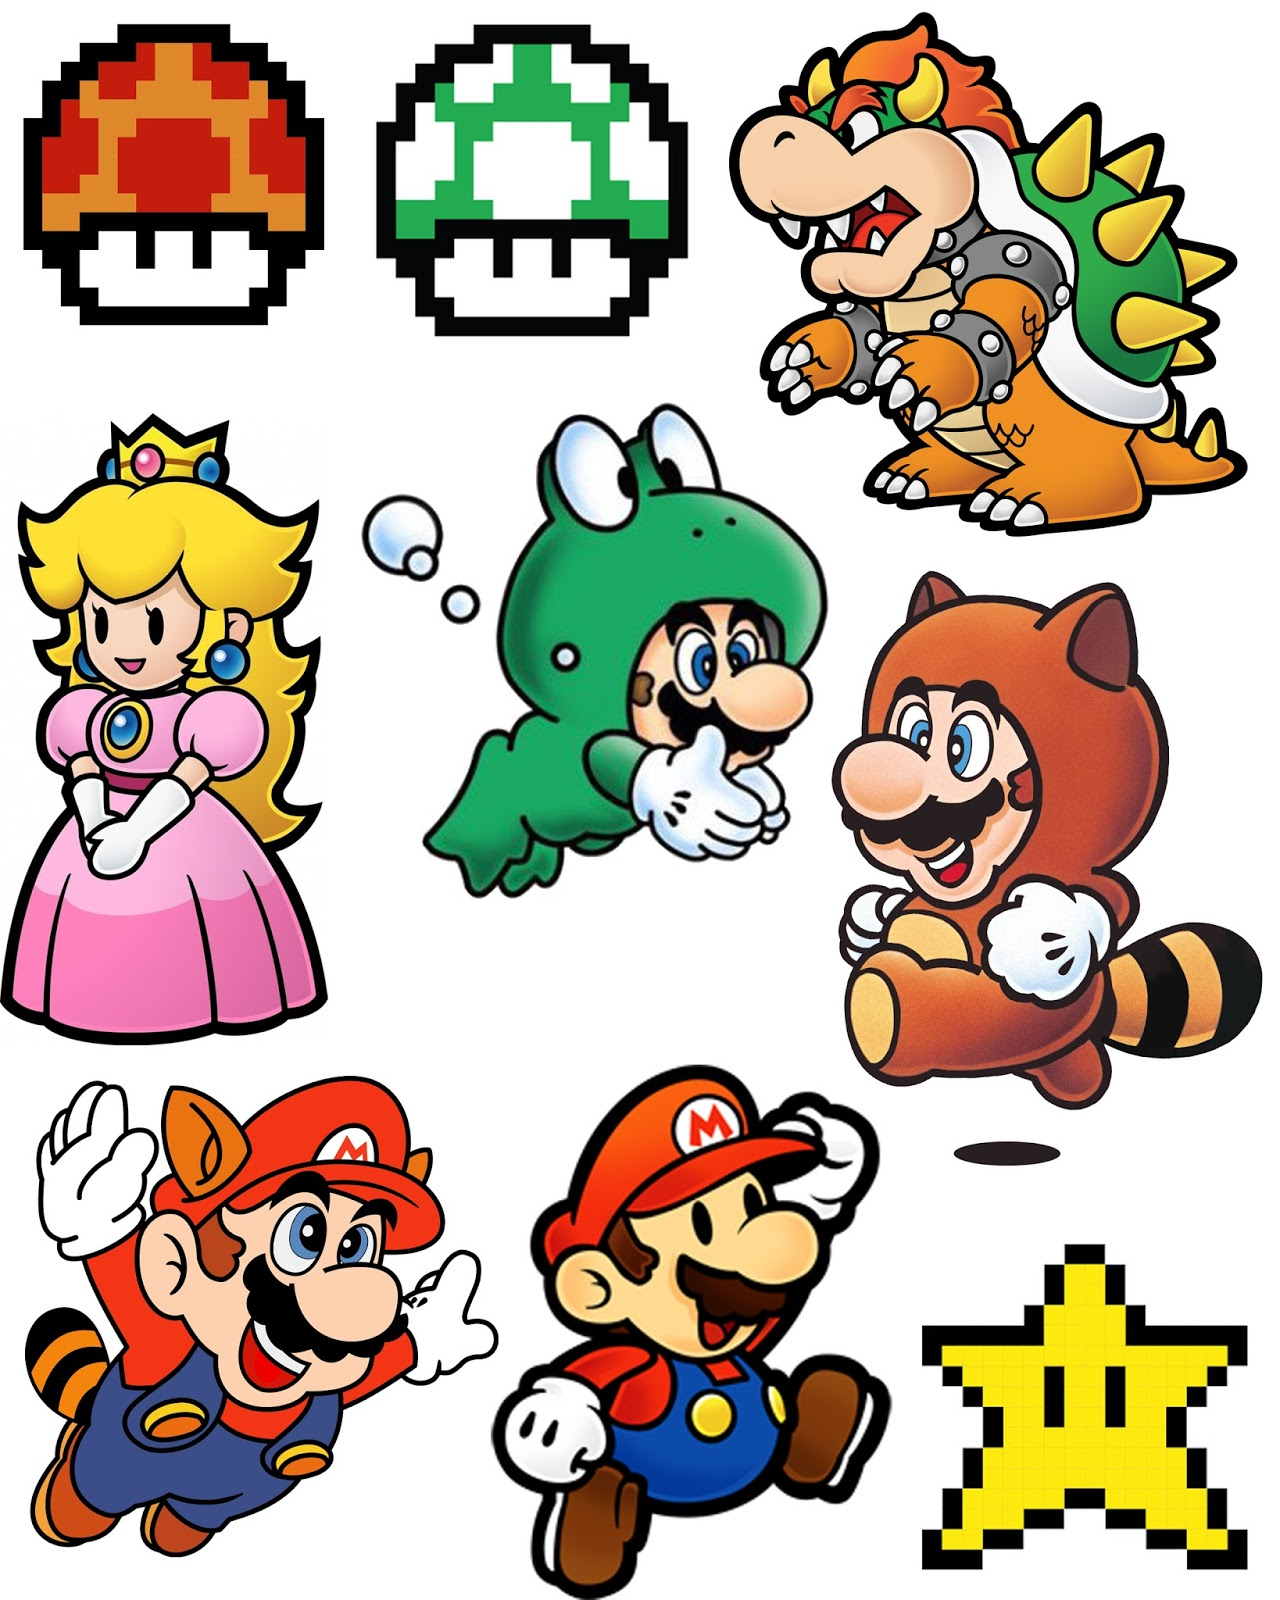 Super Mario Brothers Arts And Crafts